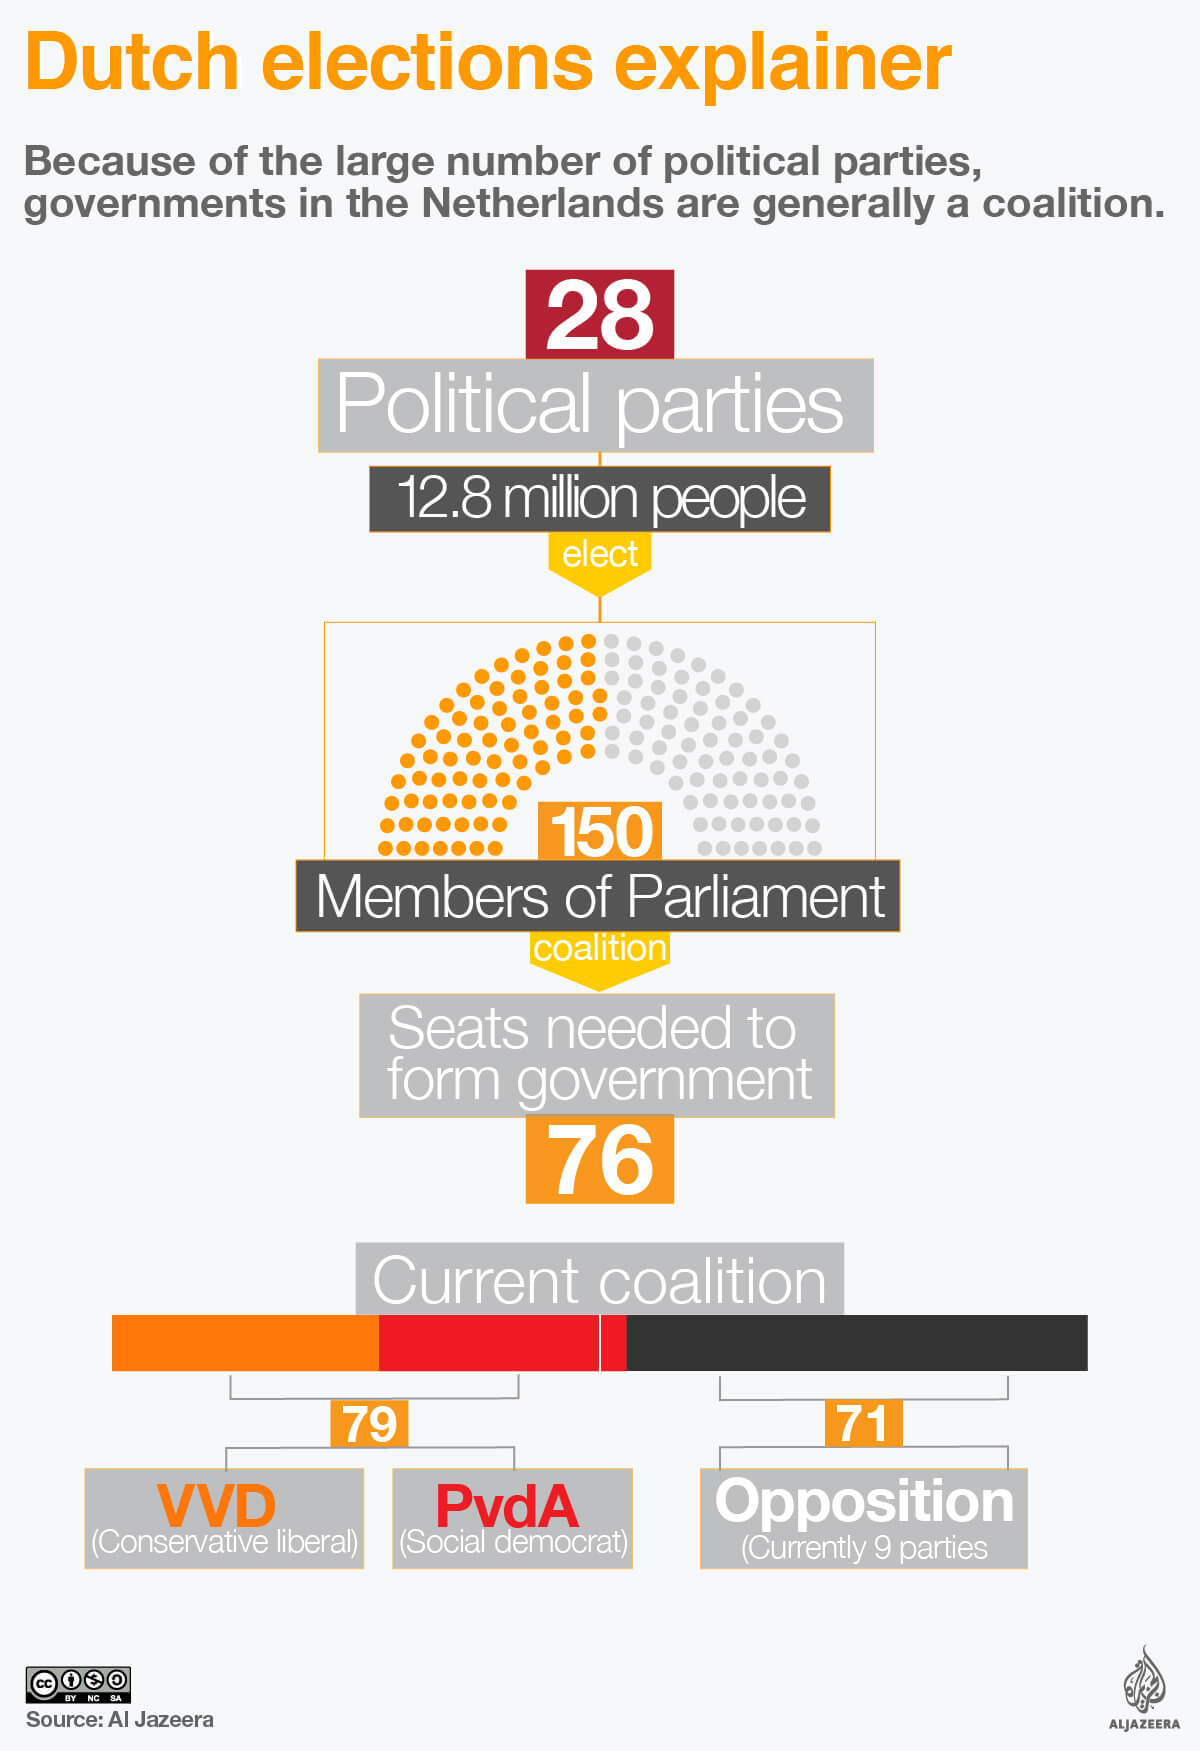 netherlands elections explainer infographic